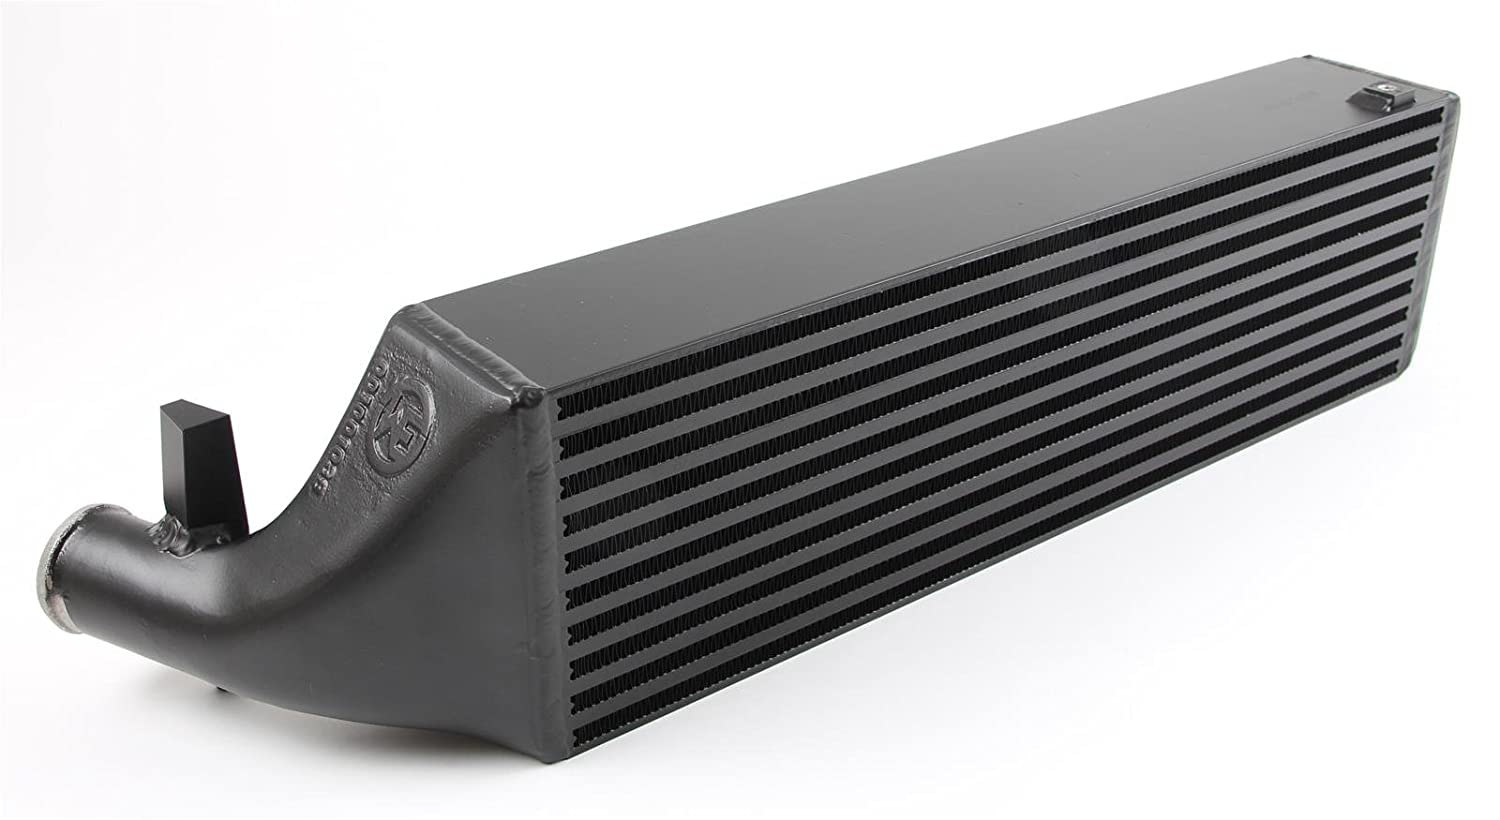 Amazon.com: Wagner Tuning Performance Intercooler Kit For VAG 1,4/1,8/2,0TSI: Automotive